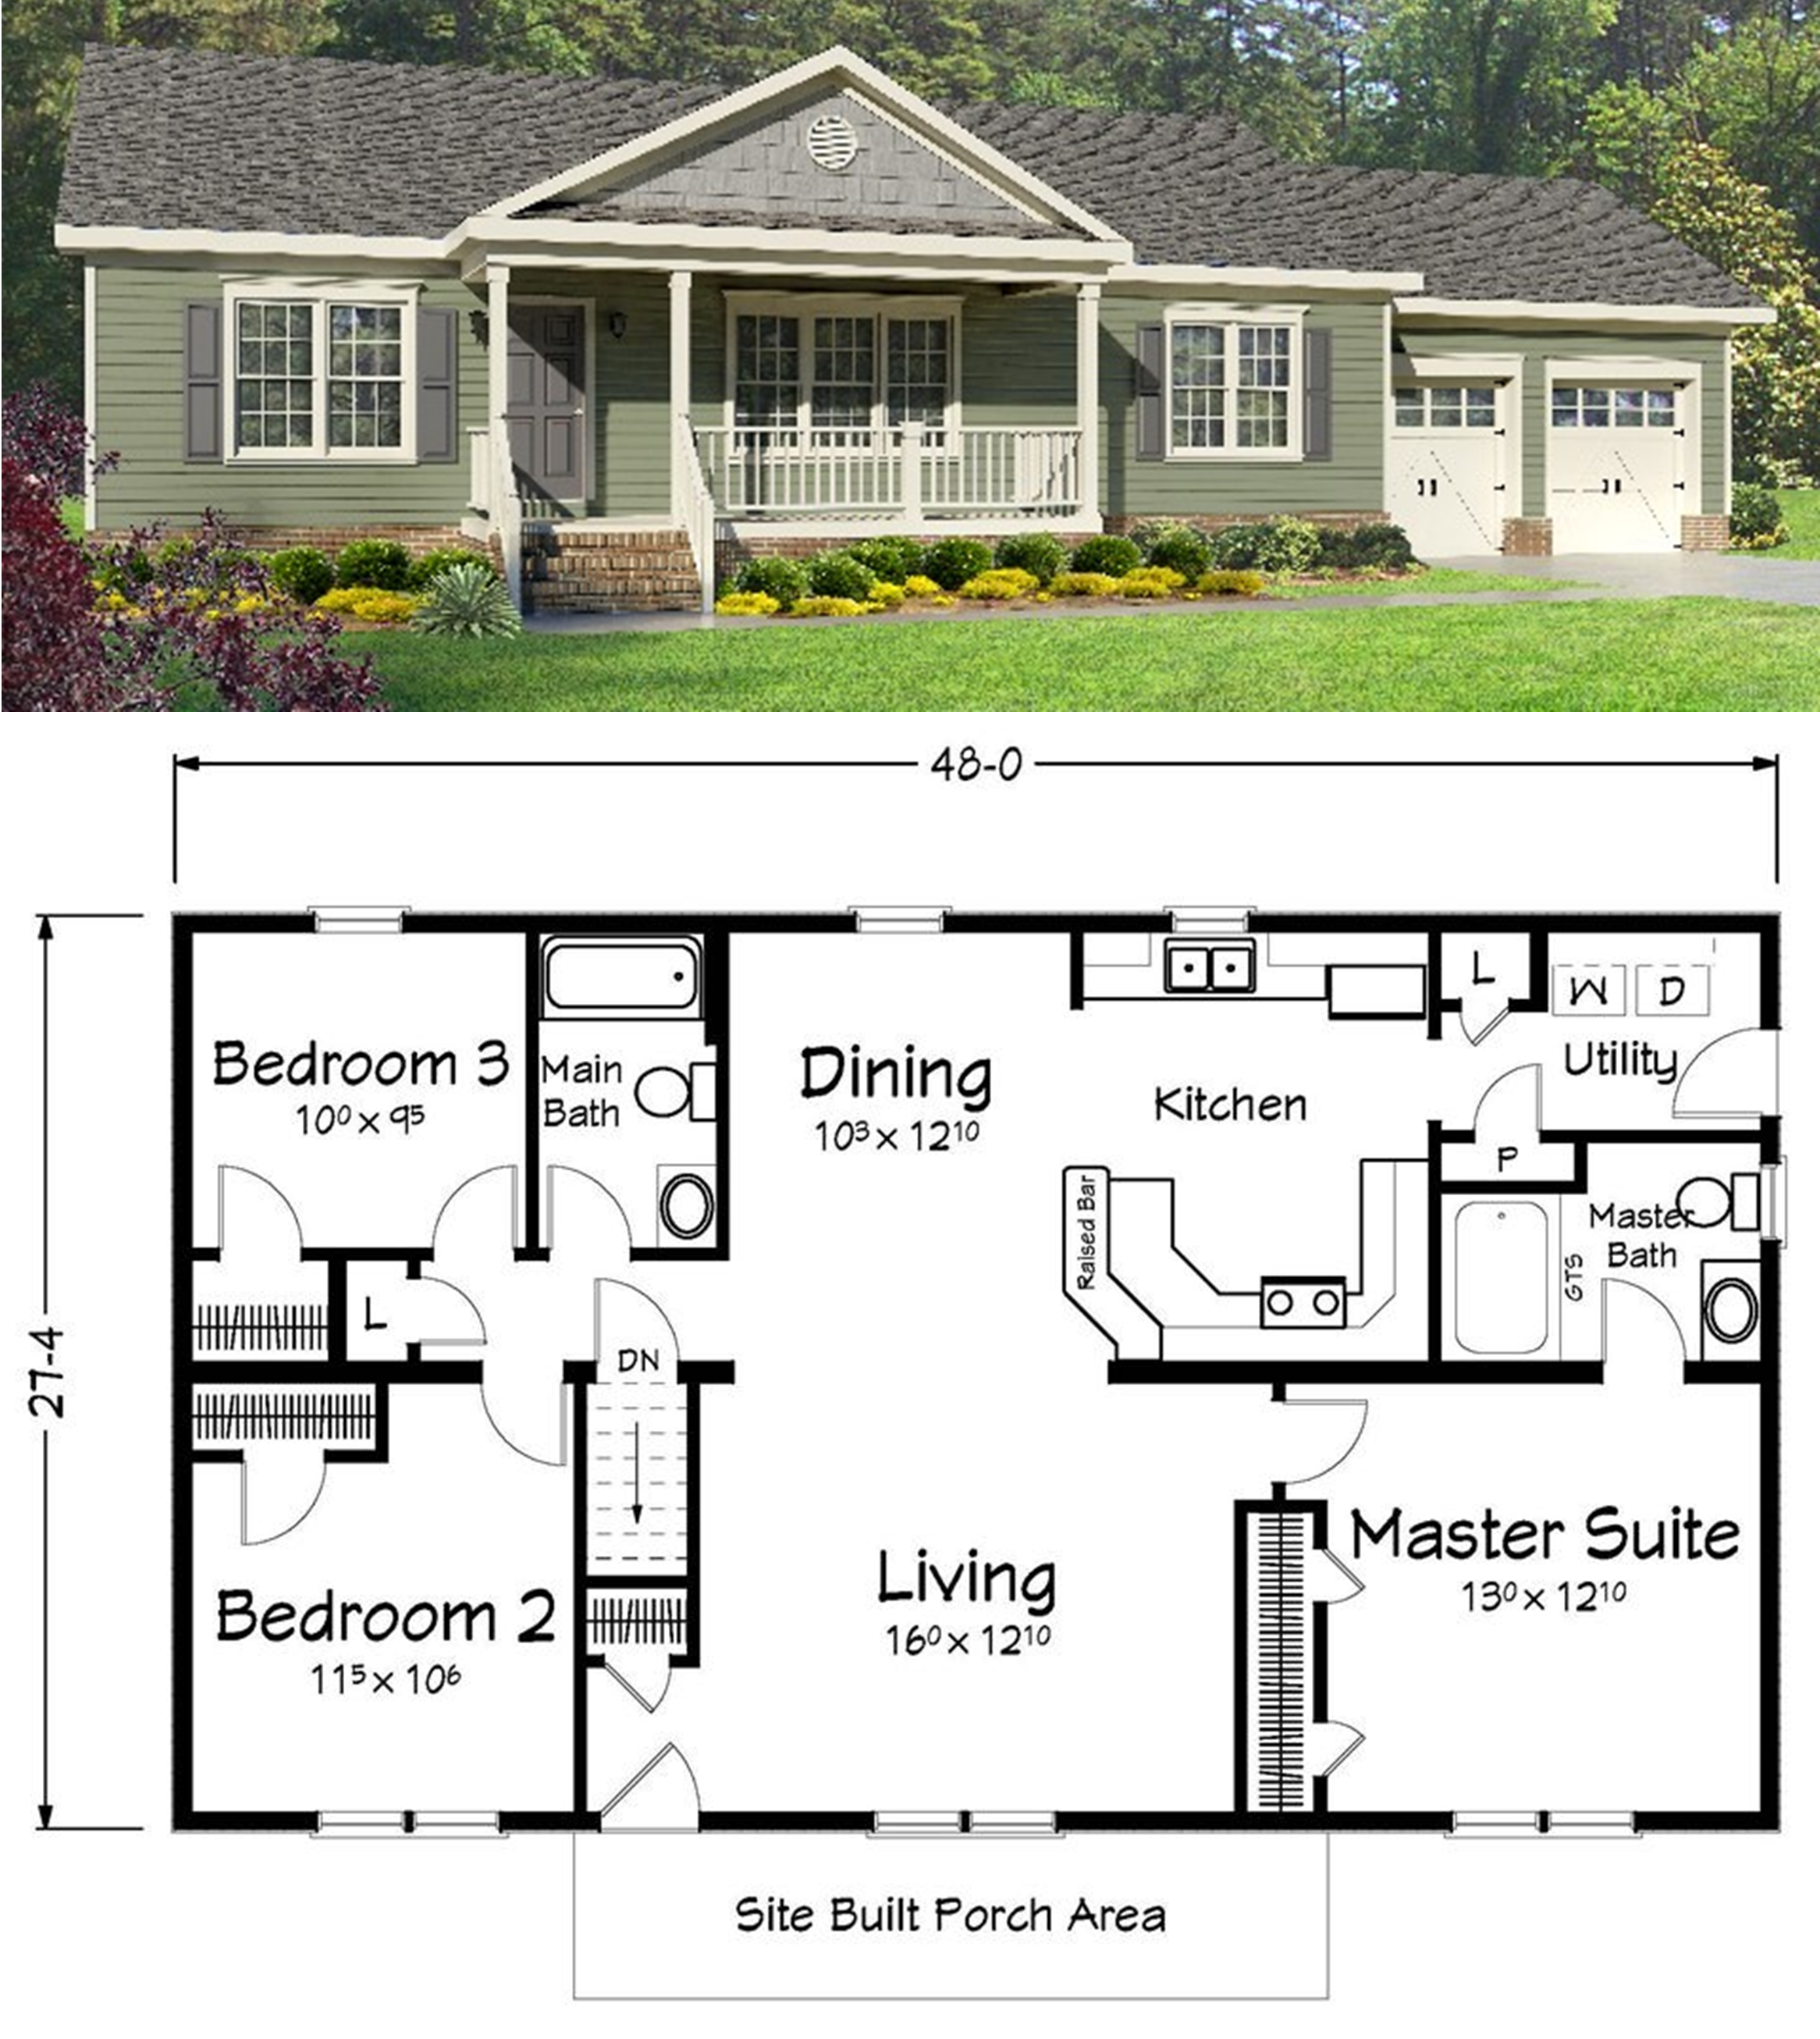 What do you think of this ranch style home ranch style Small ranch home plans